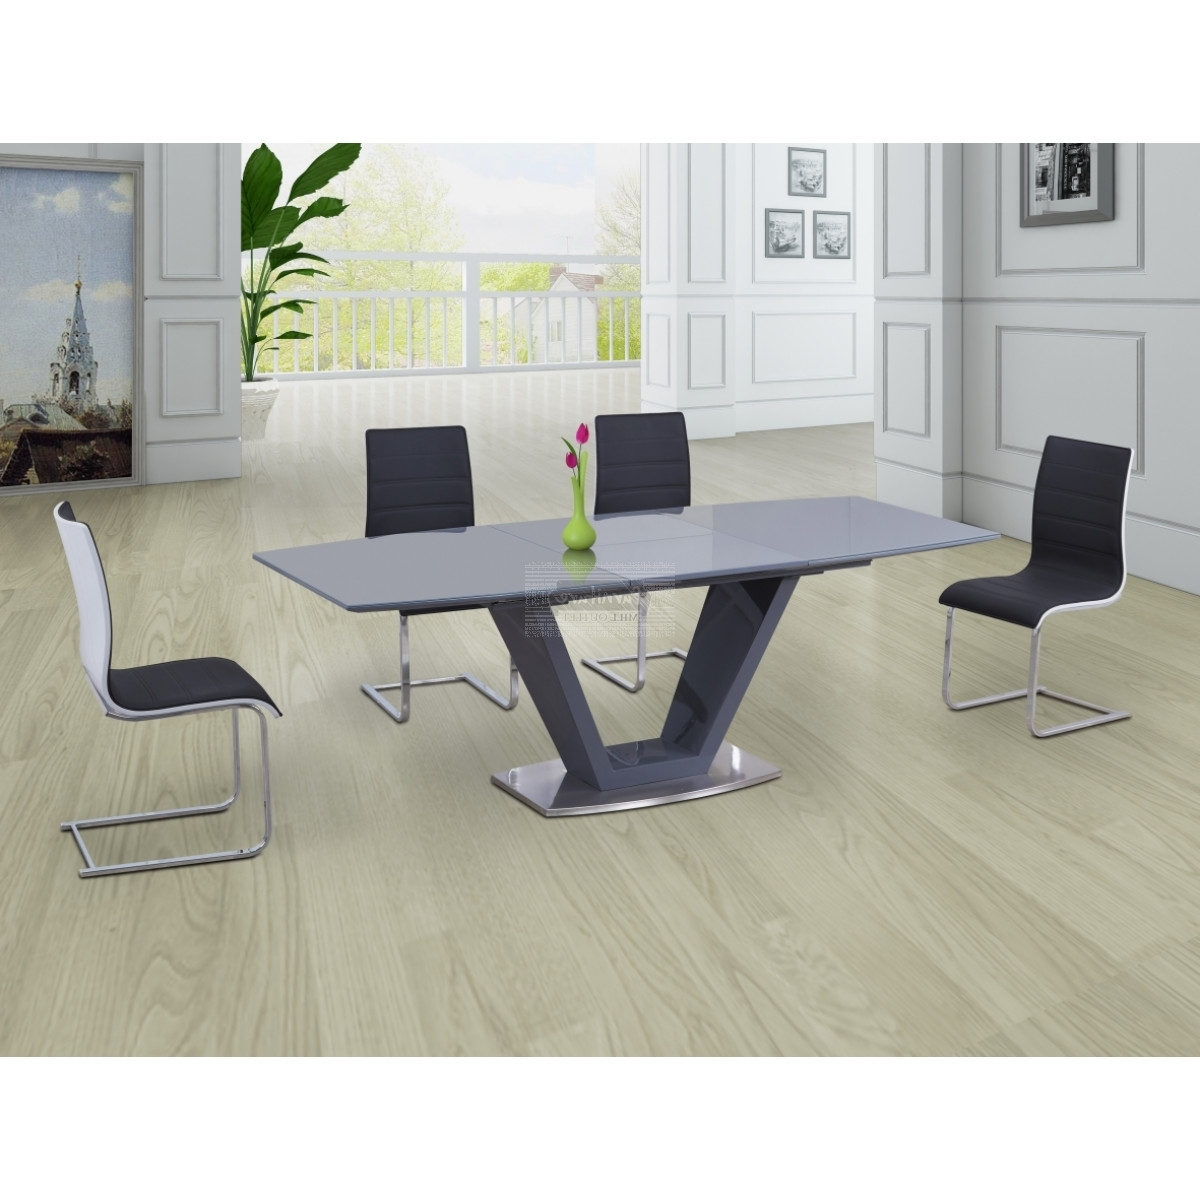 Newest Lorgato Grey High Gloss Extending Dining Table – 160Cm To 220Cm Intended For Grey Glass Dining Tables (Gallery 7 of 25)